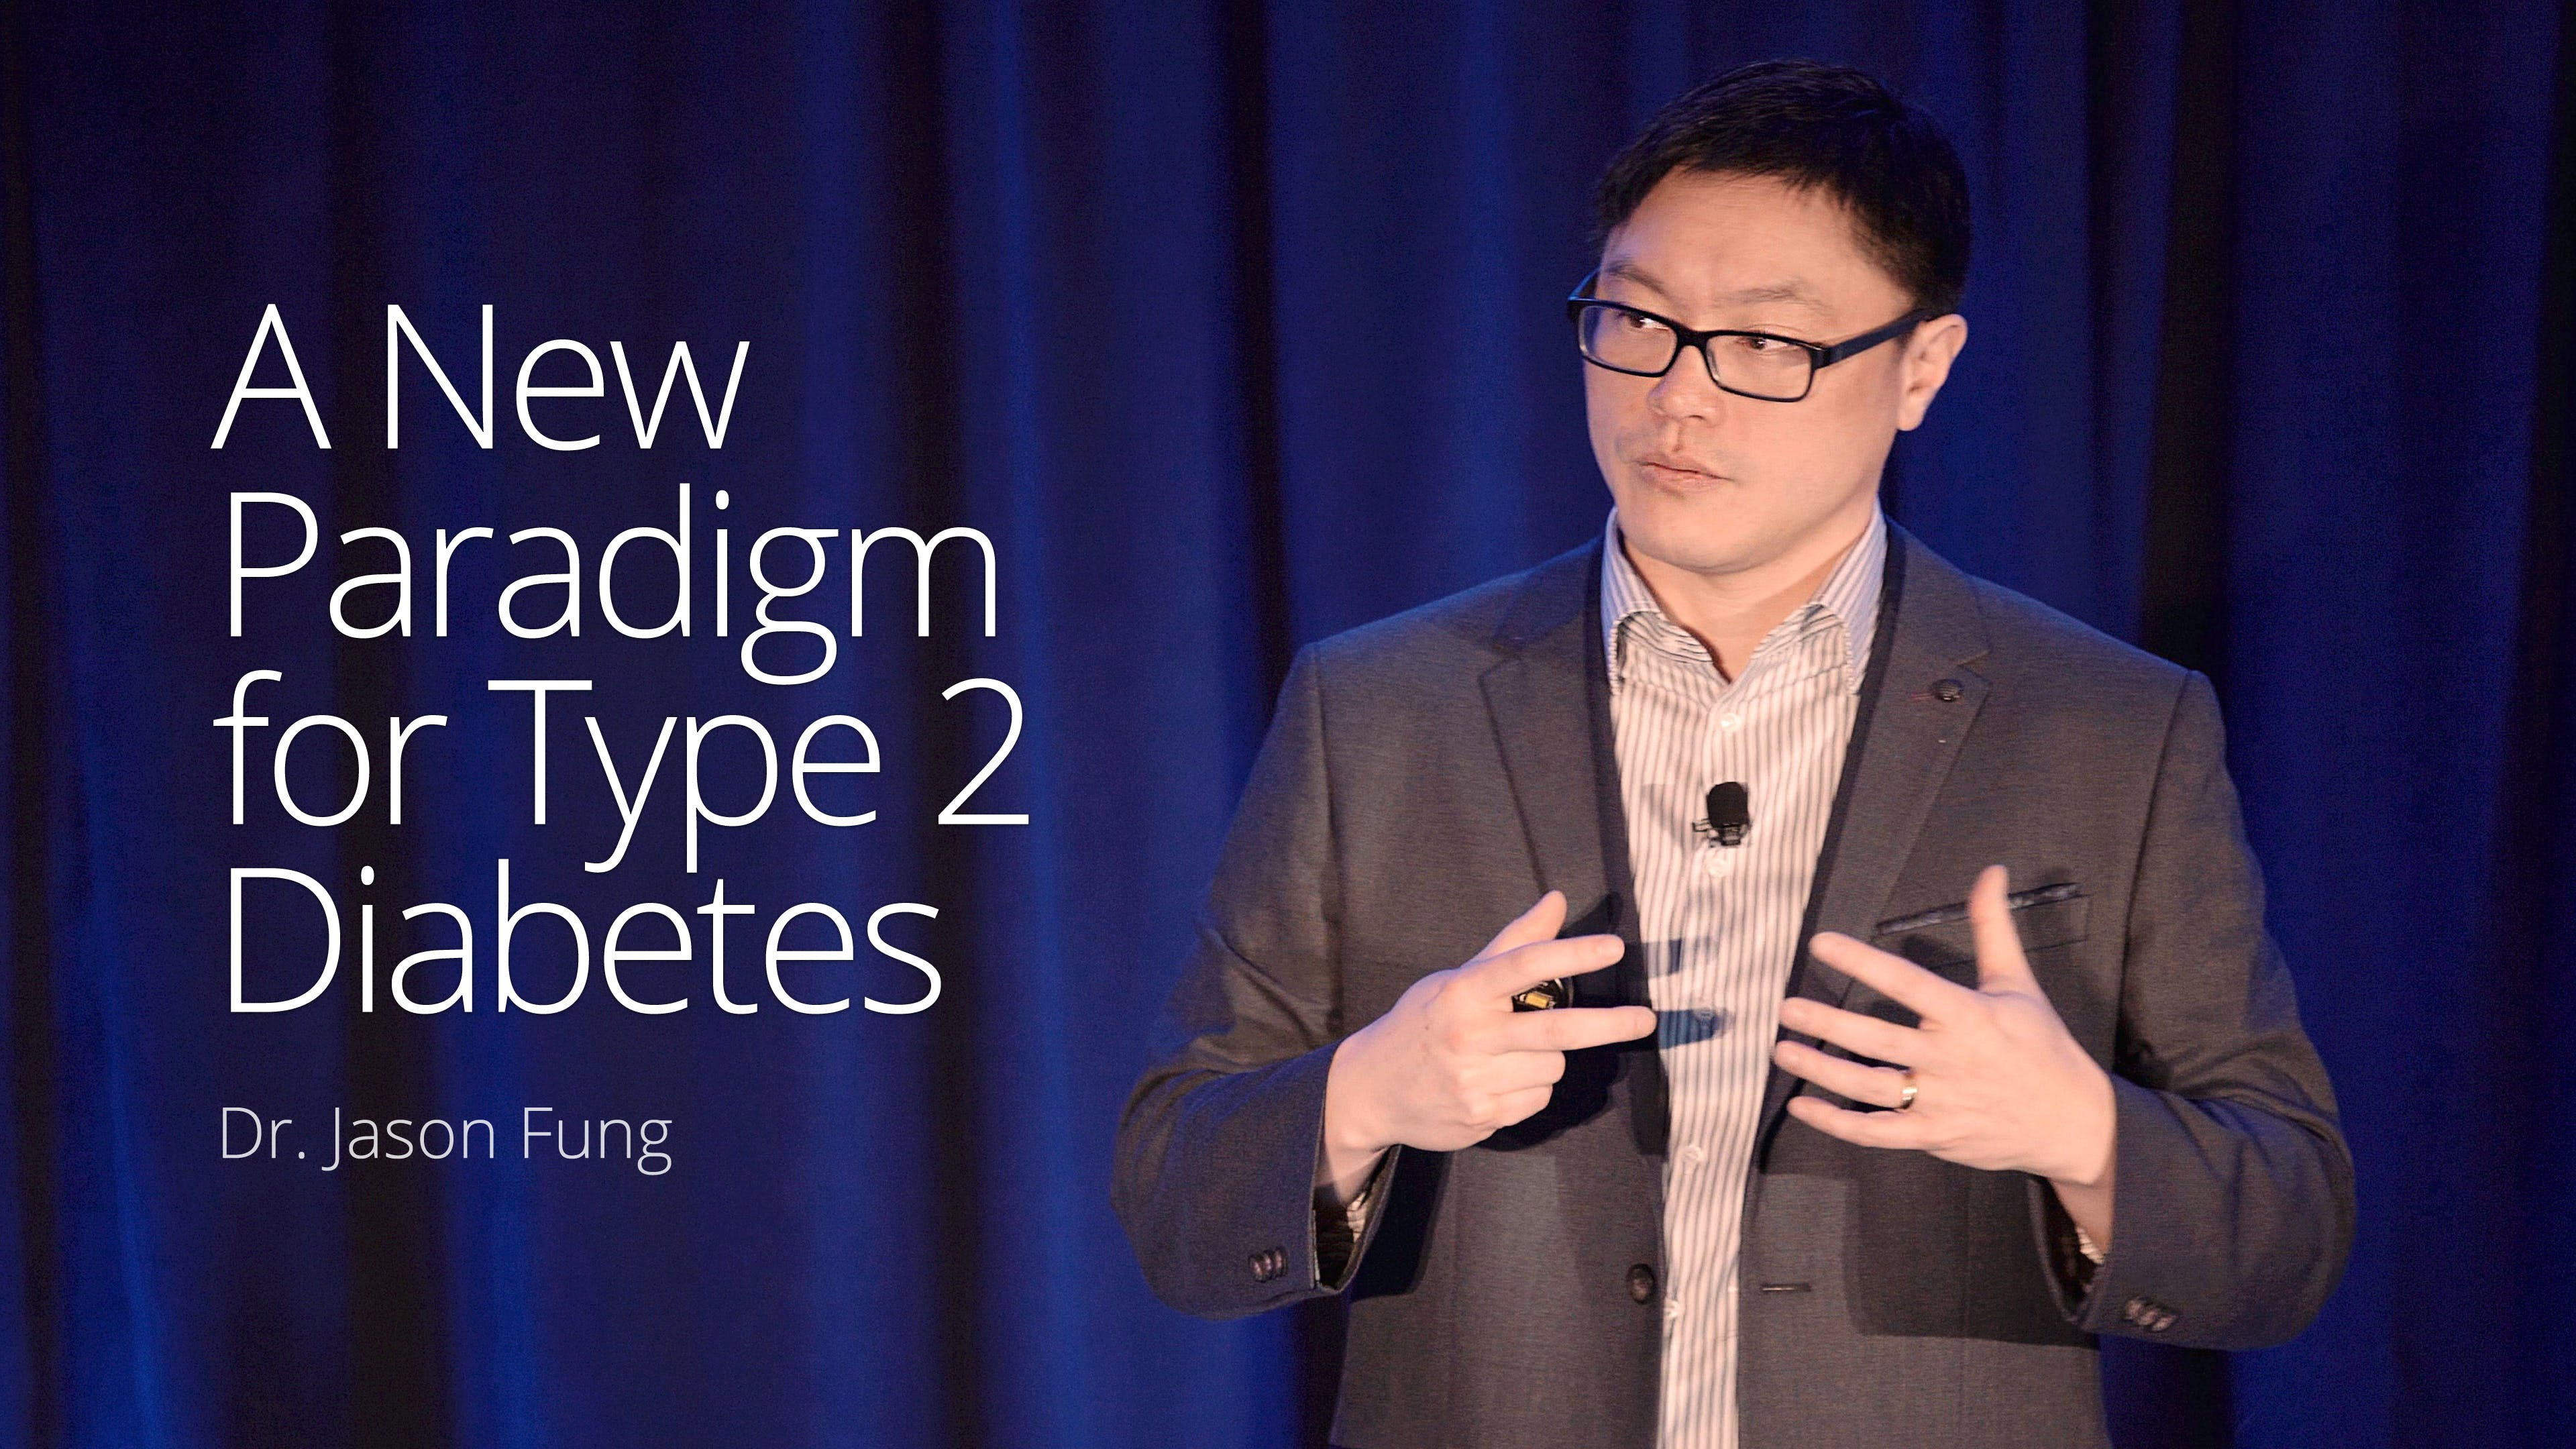 A New Paradigm for Type 2 Diabetes